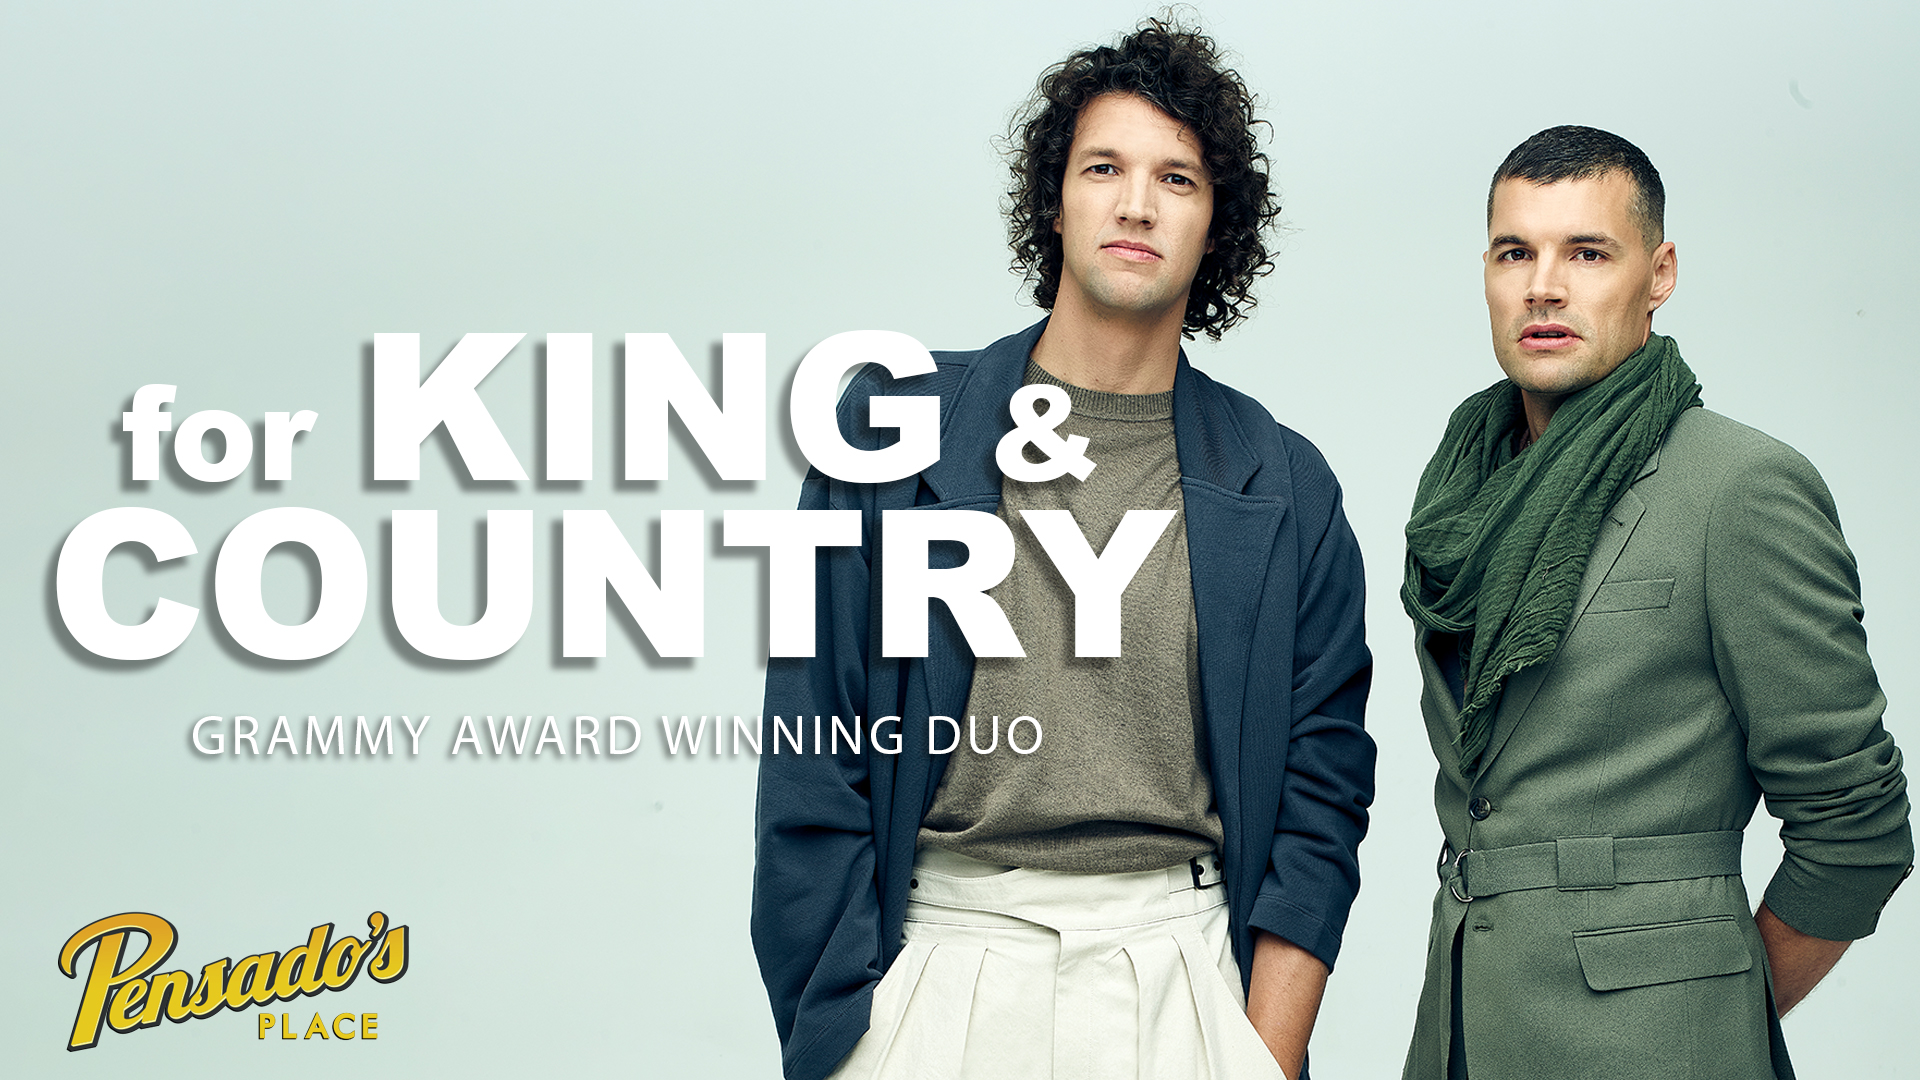 Grammy Award Winning Duo for KING & COUNTRY